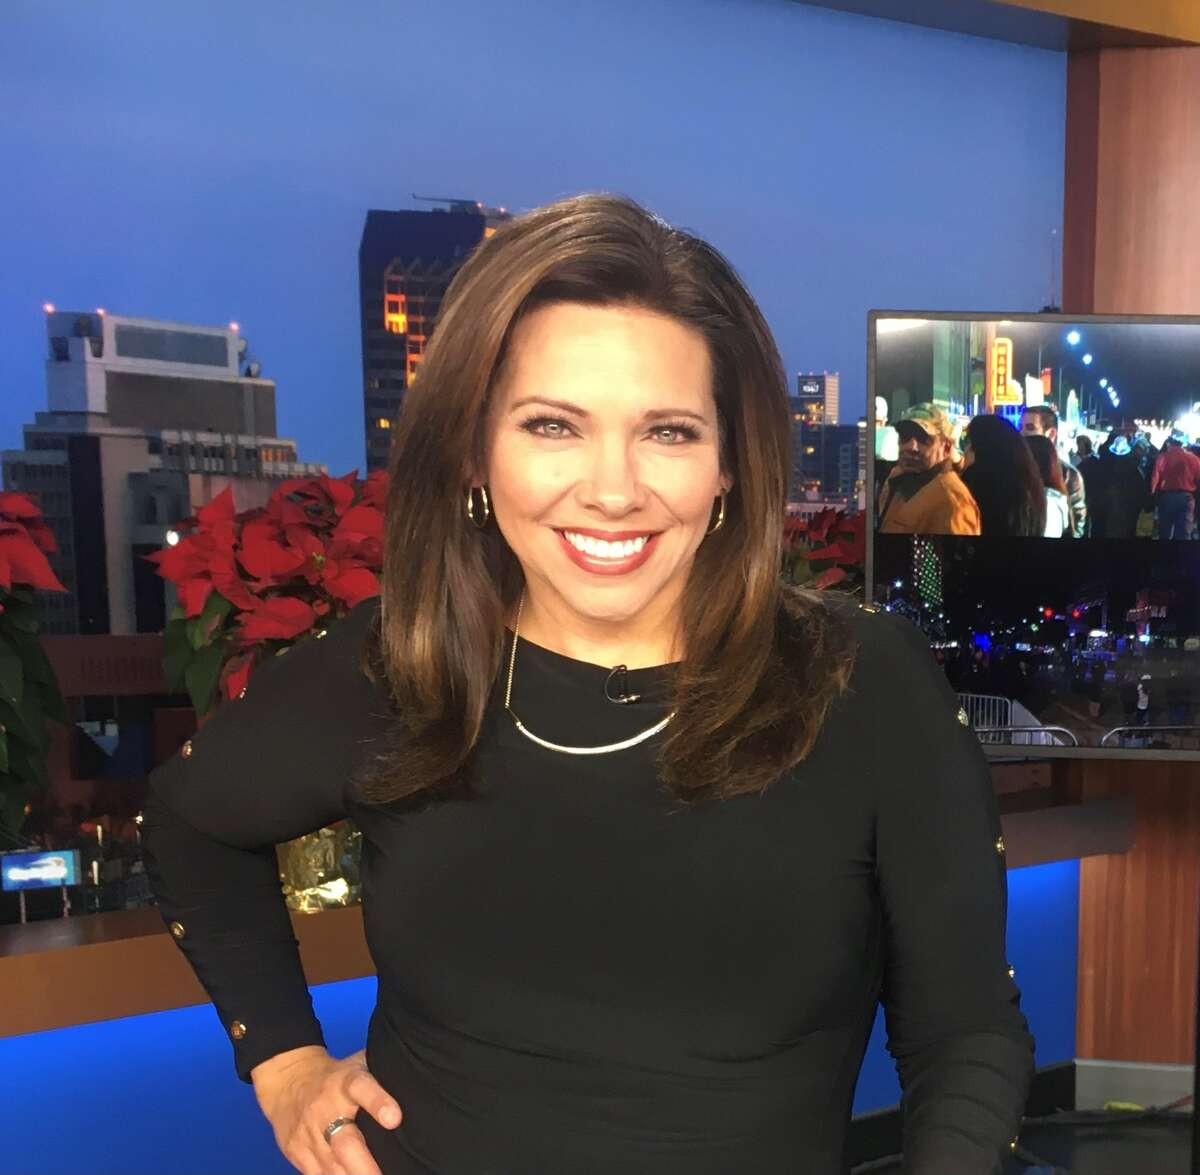 News 4 San Antonio Troubleshooter April Molina will leave her journalism career to join Ransomed Life as their Director of Communications.